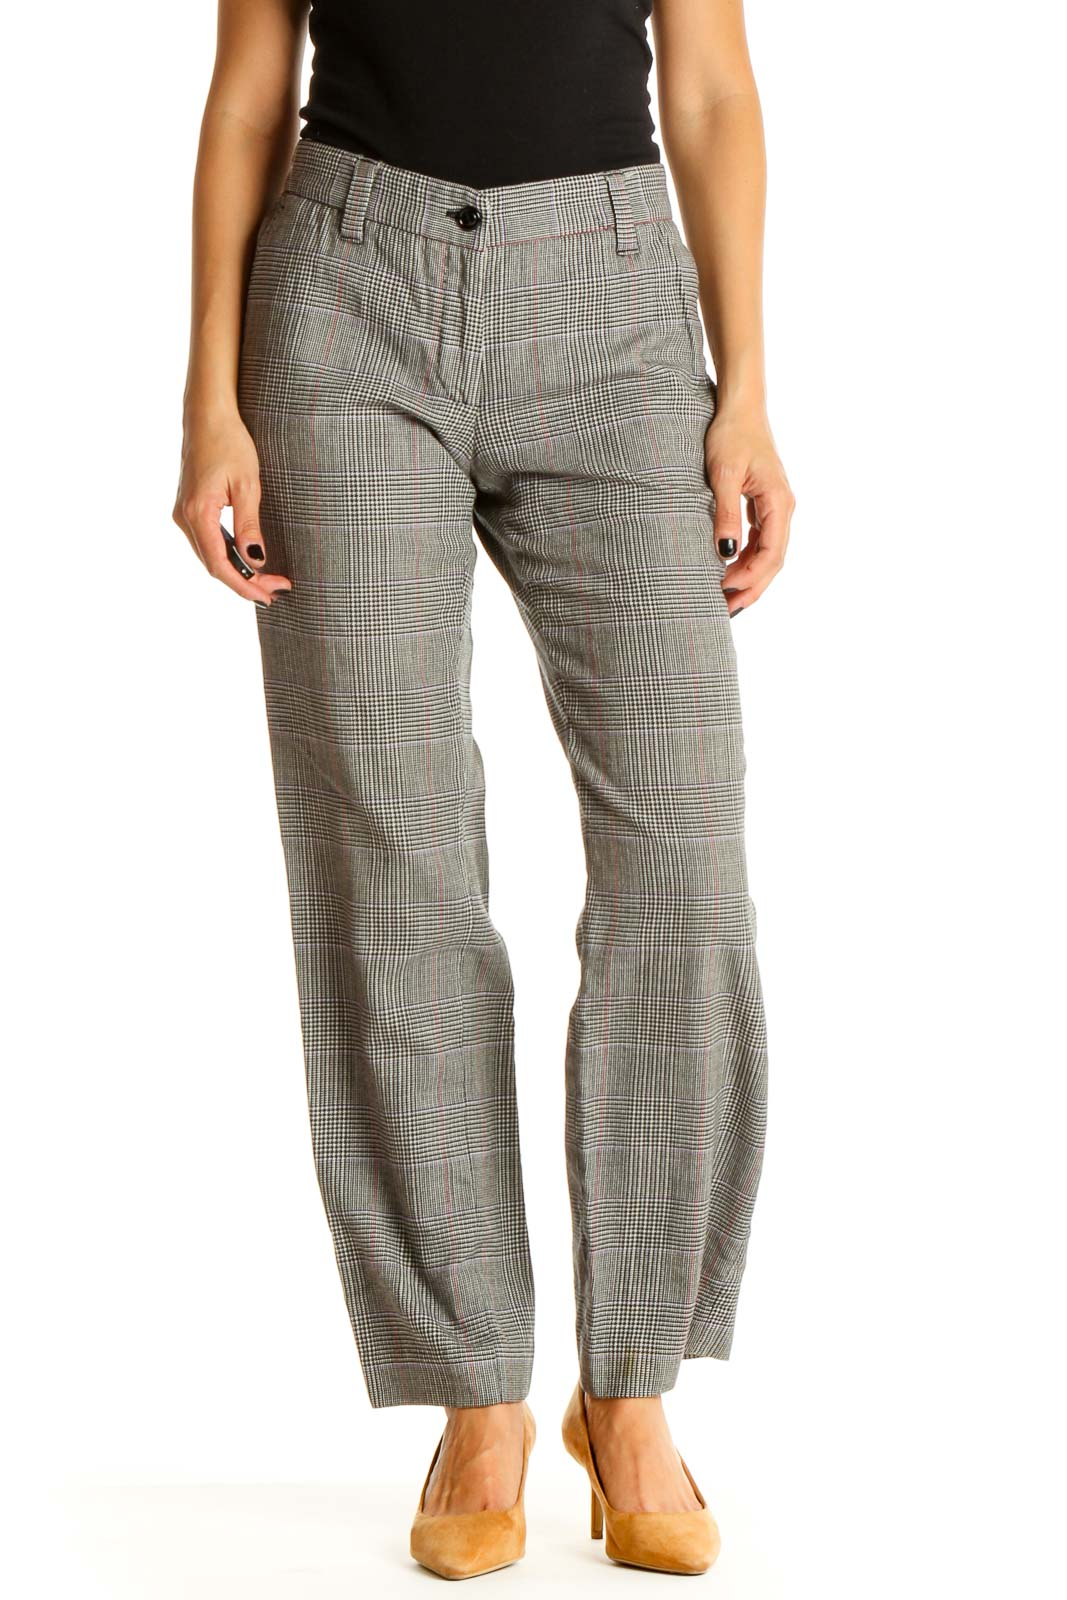 Gray Plaid Printed Chic Trousers Front